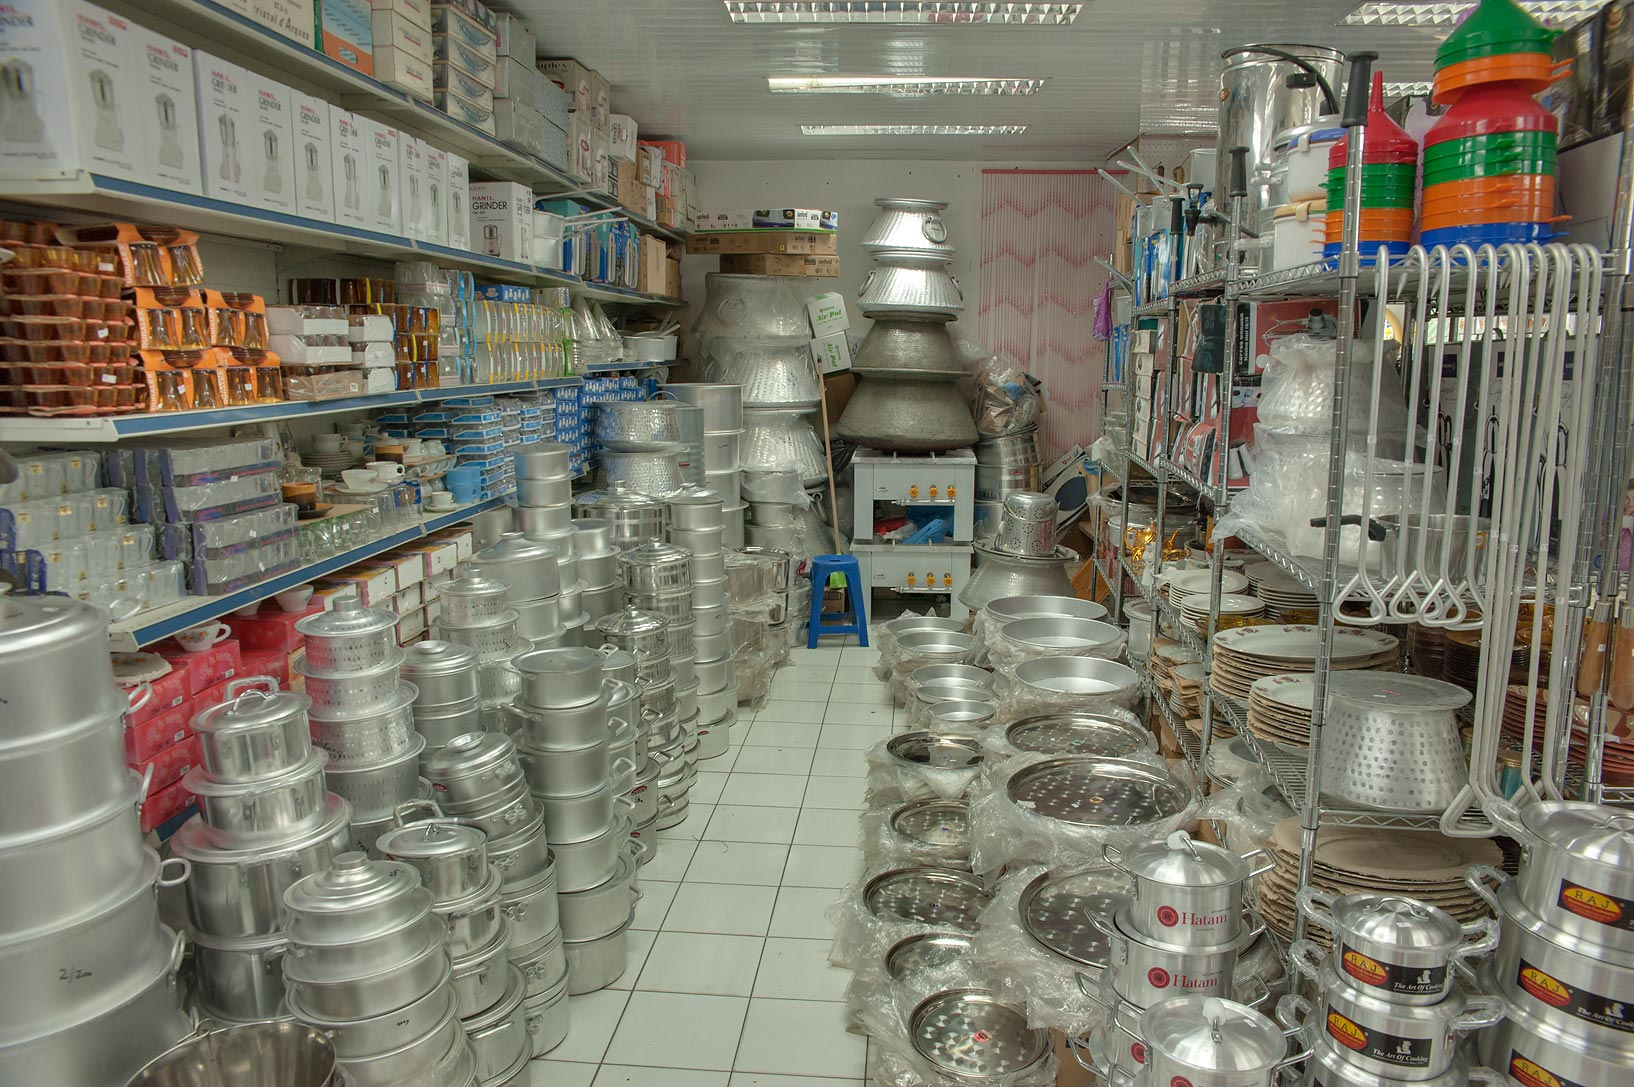 Kitchenware Shop Photo 1309 26 Aluminium Kitchenware Shop In Souq Waqif Old